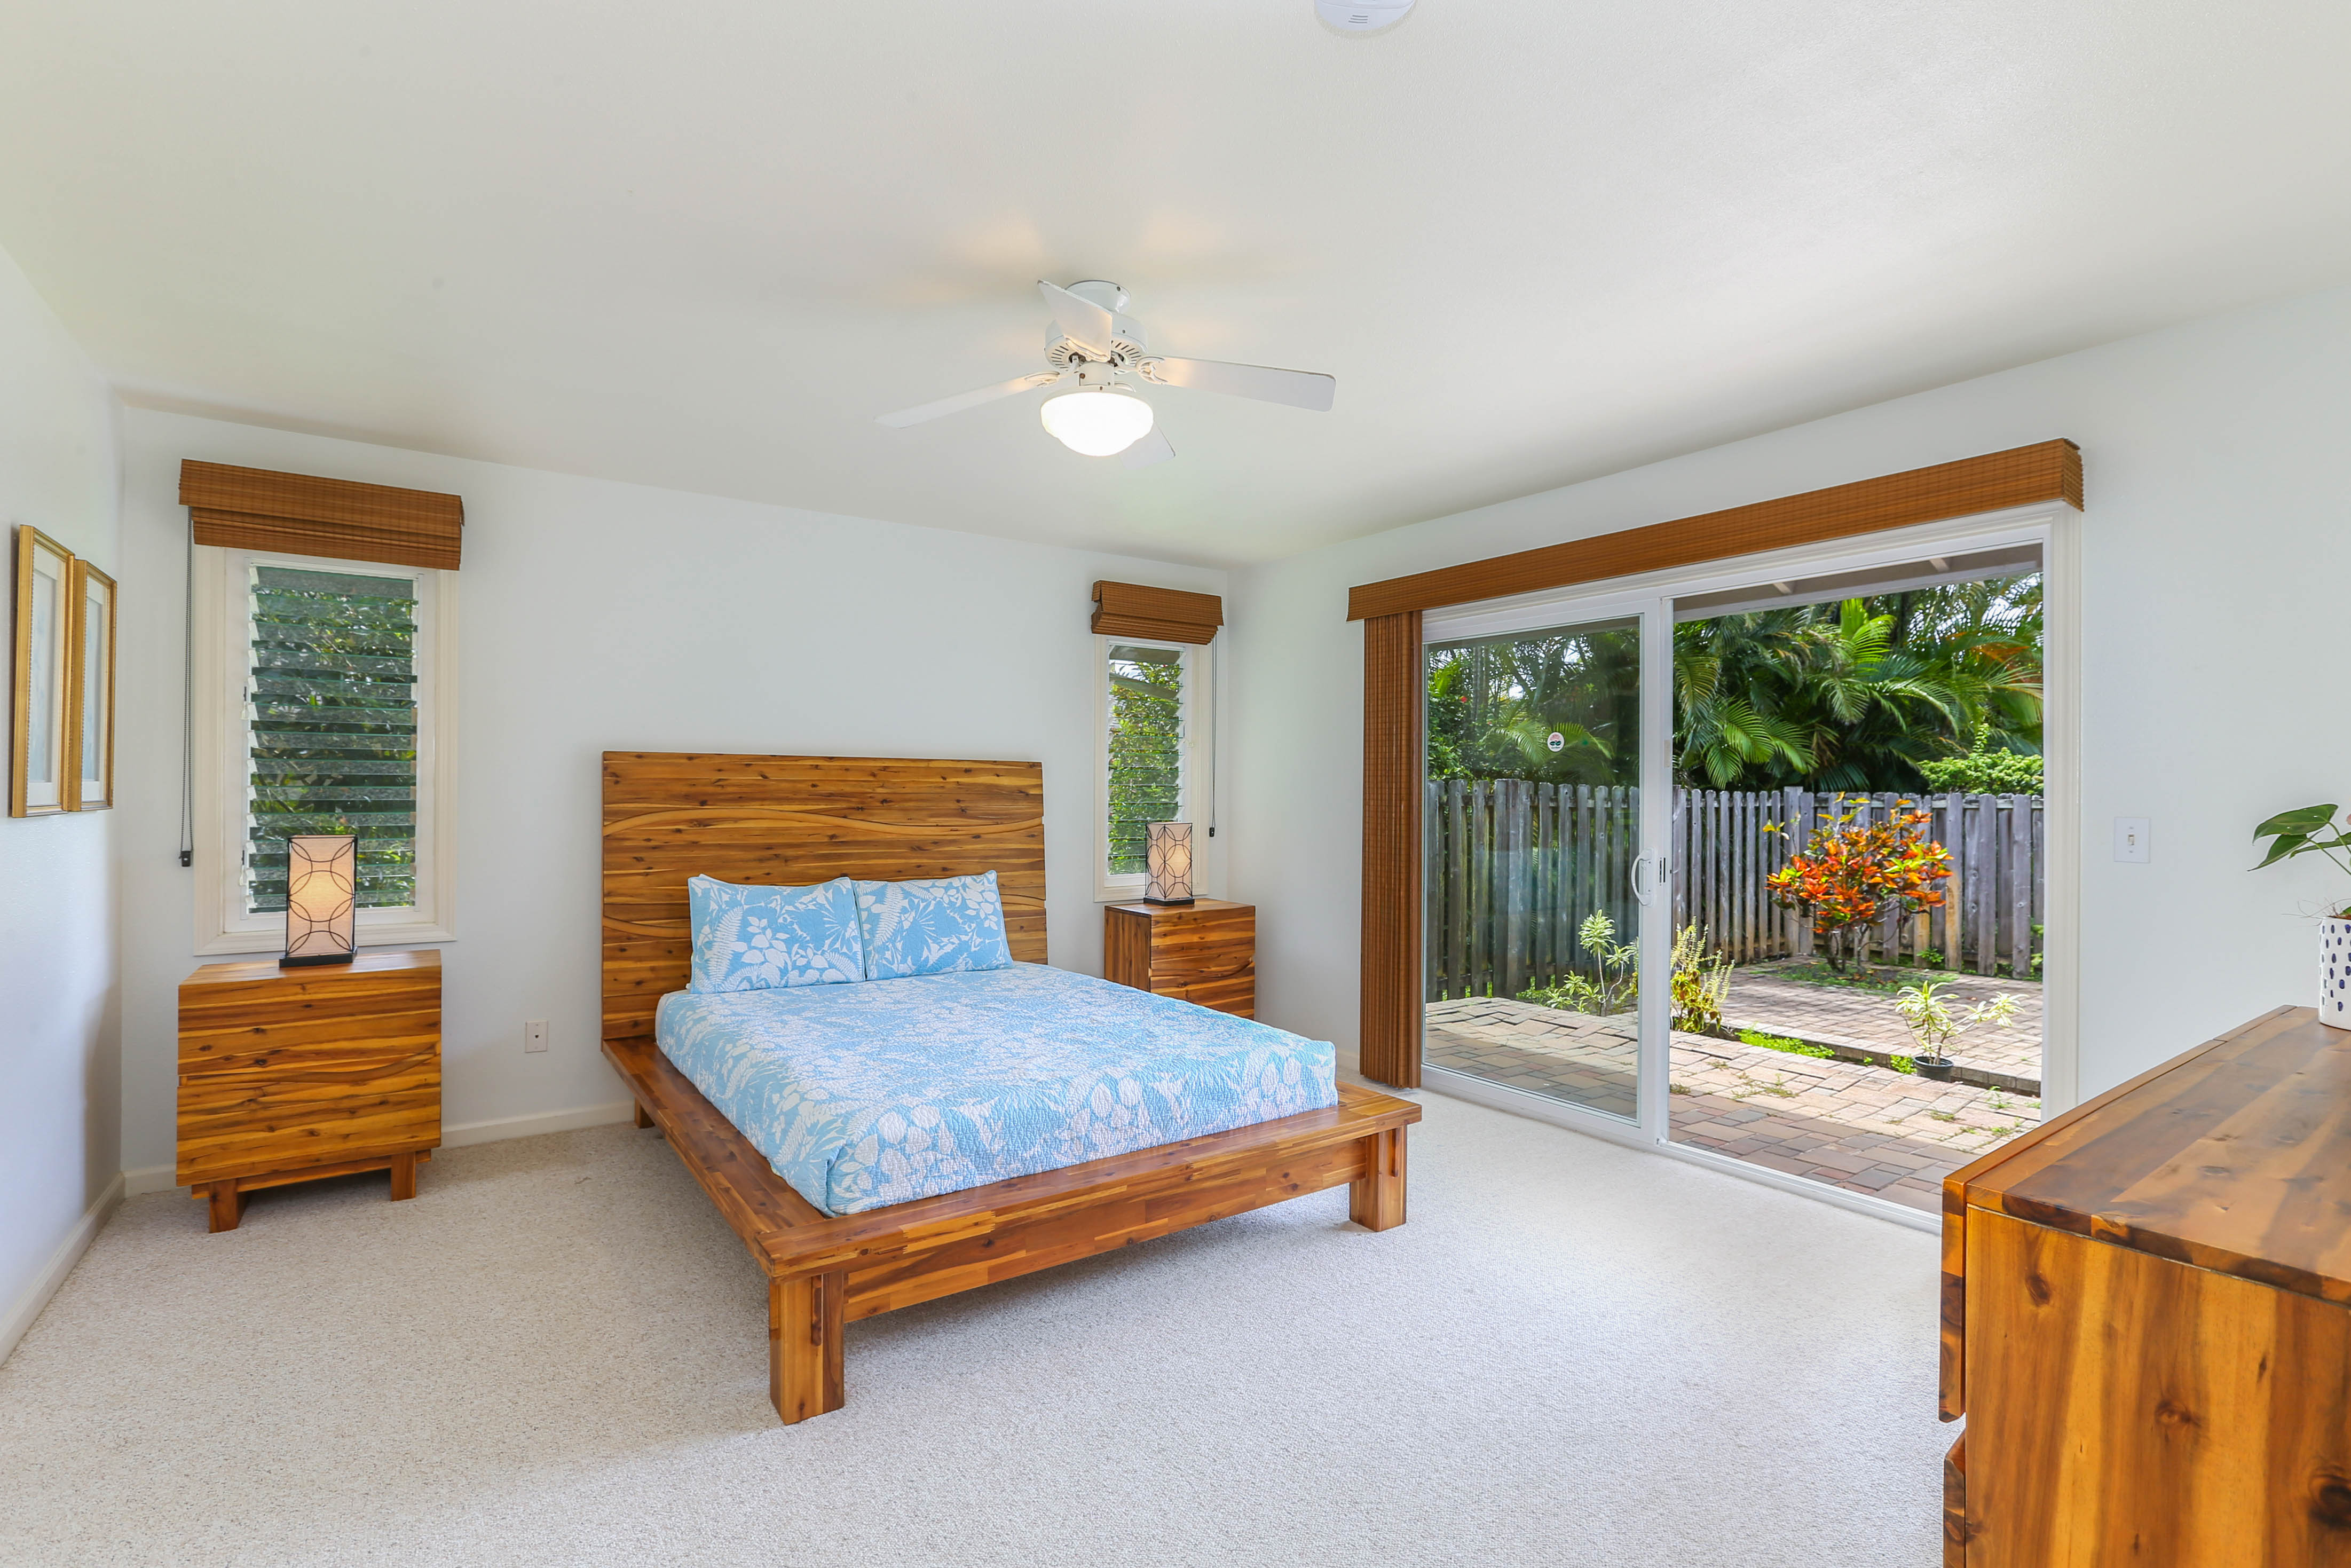 Princeville-vacations New bdrm 2-a- 4173 Liholiho Rd Princeville